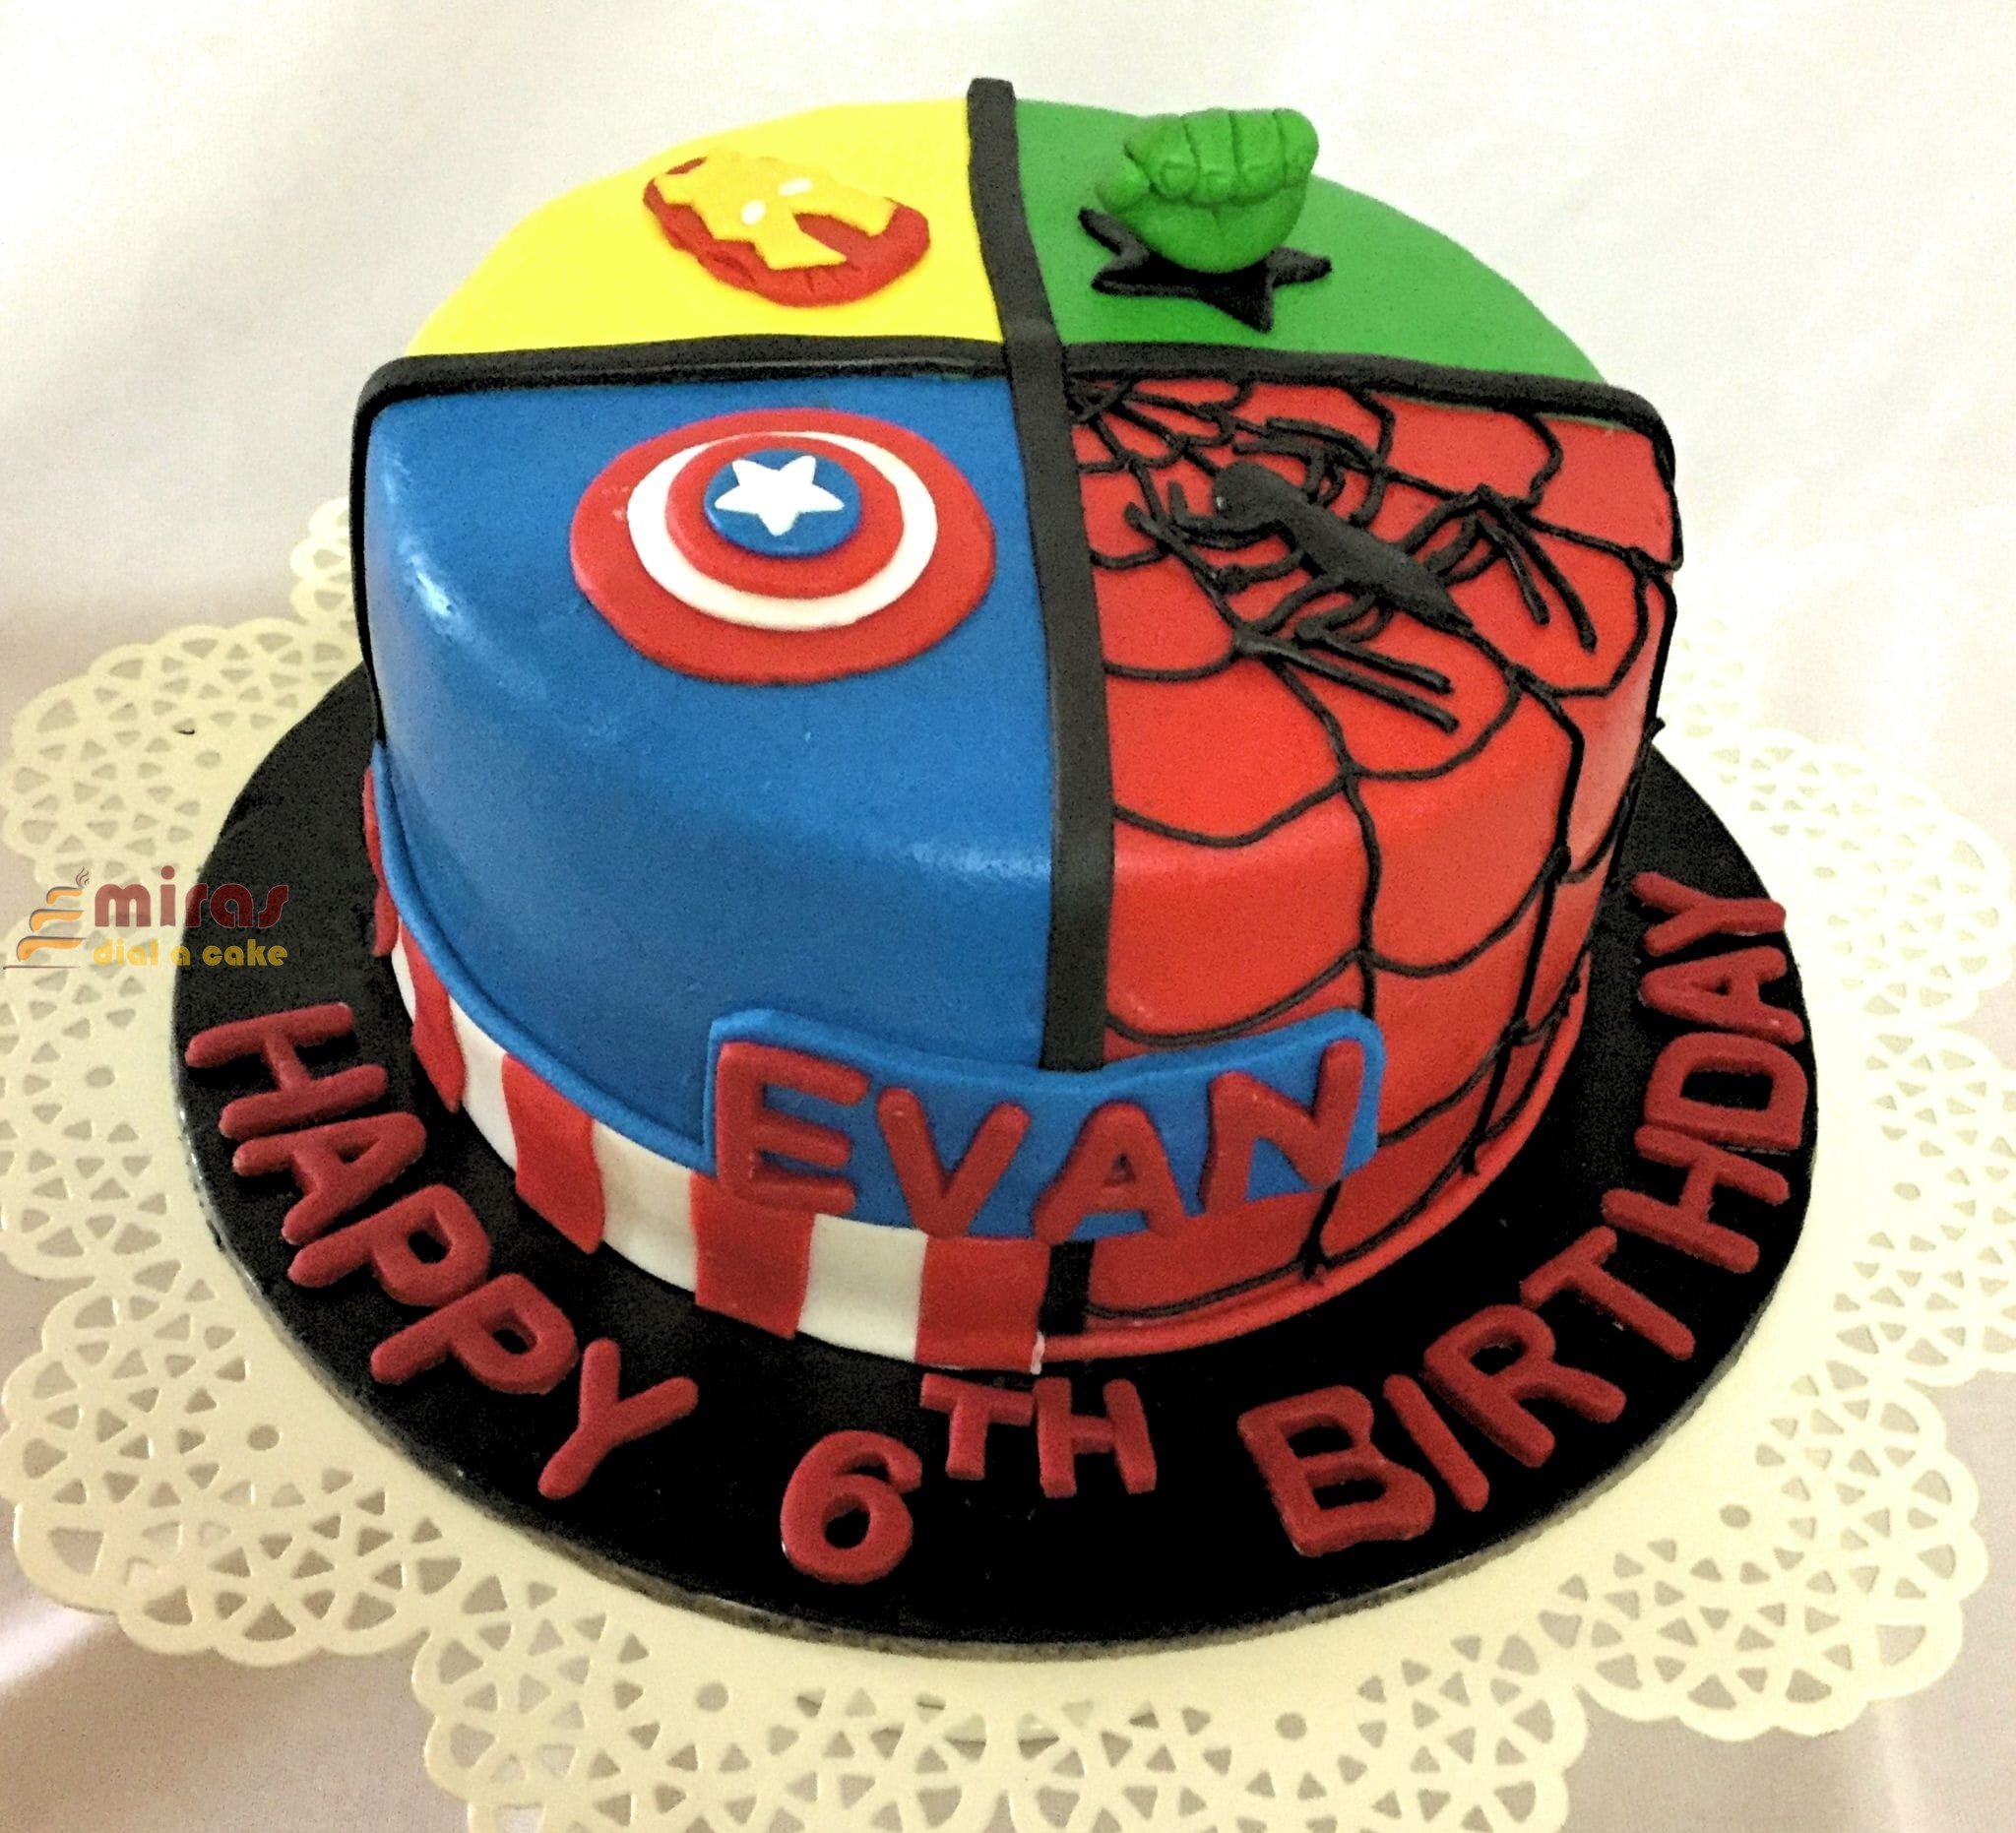 Peachy Birthday Cake Avenger Theme Cake Online Birthday Cakes For Boys Personalised Birthday Cards Veneteletsinfo